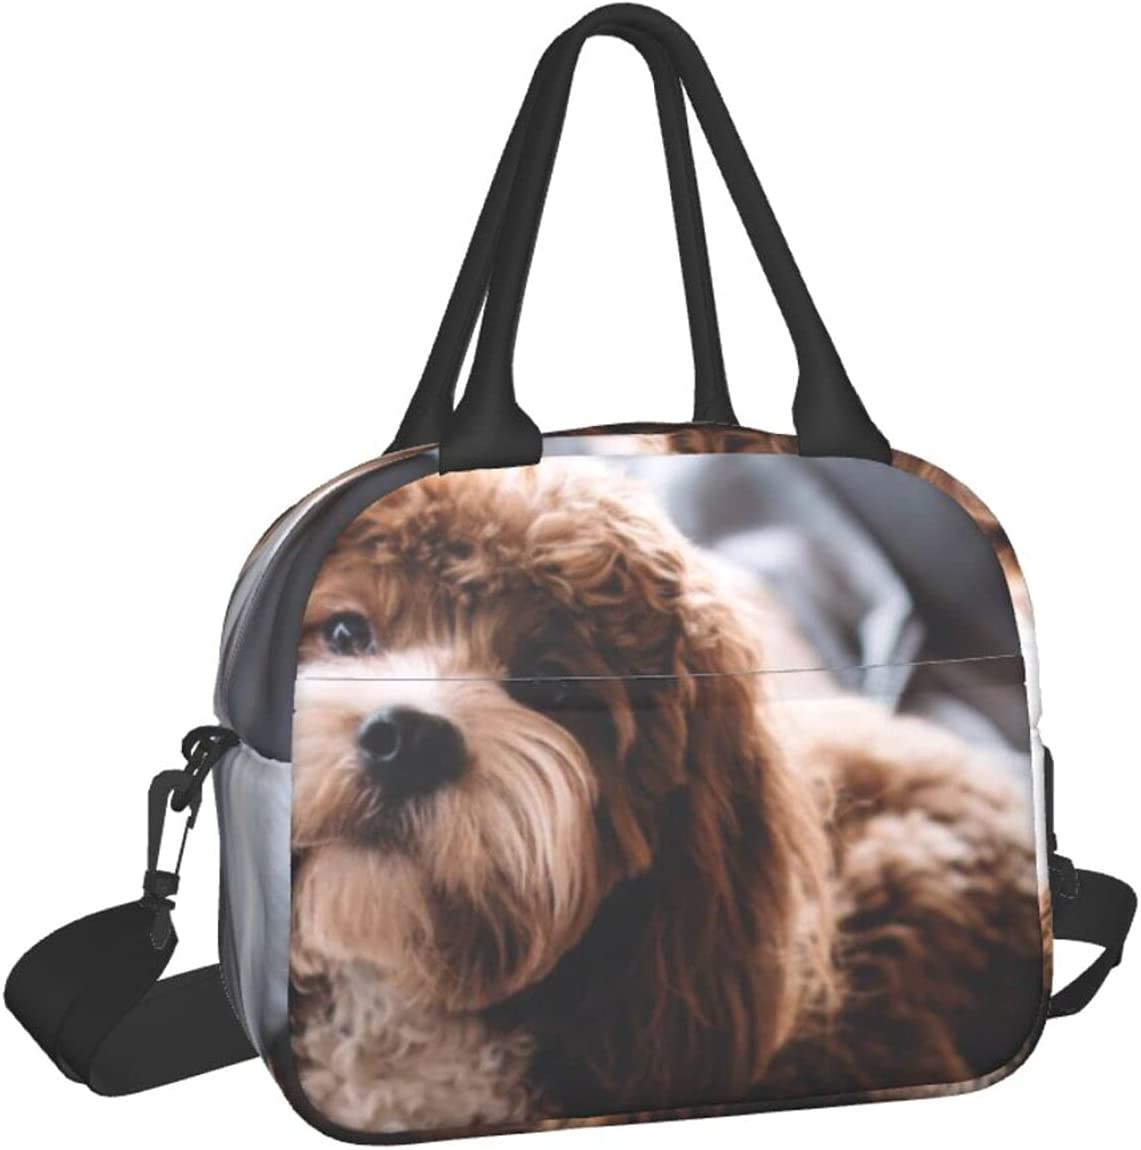 Pet Dog Print Hand-Held Financial sales Popular popular sale Table Portable Meal Lunch Contai Bag